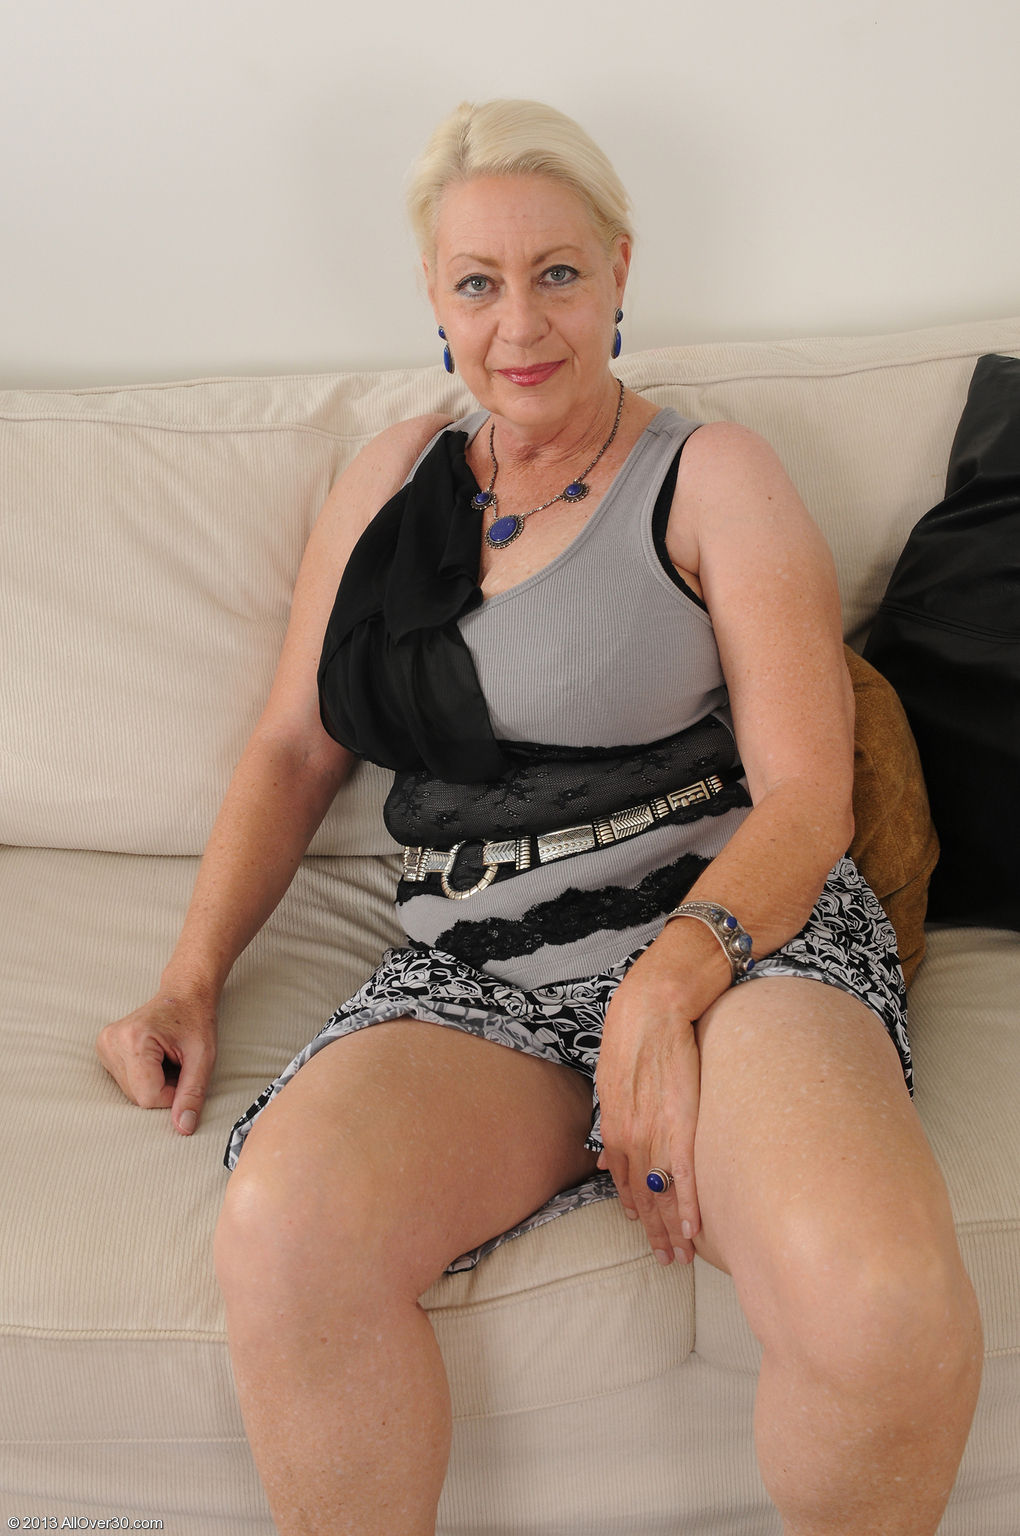 40 plus milf from bristol uk rides dildo on holiday 5